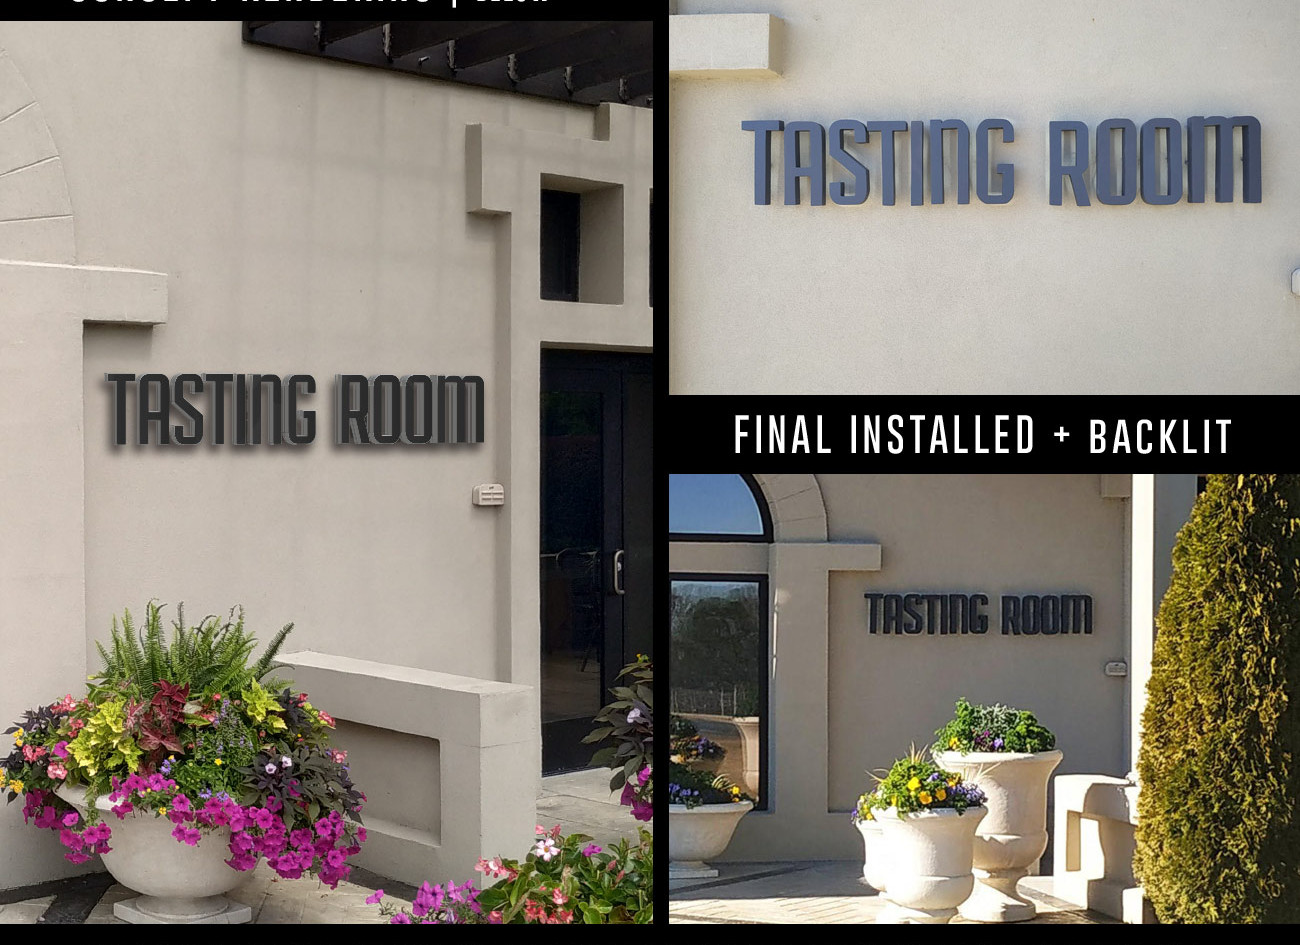 Exterior Sign Rendering Compared with Final Install